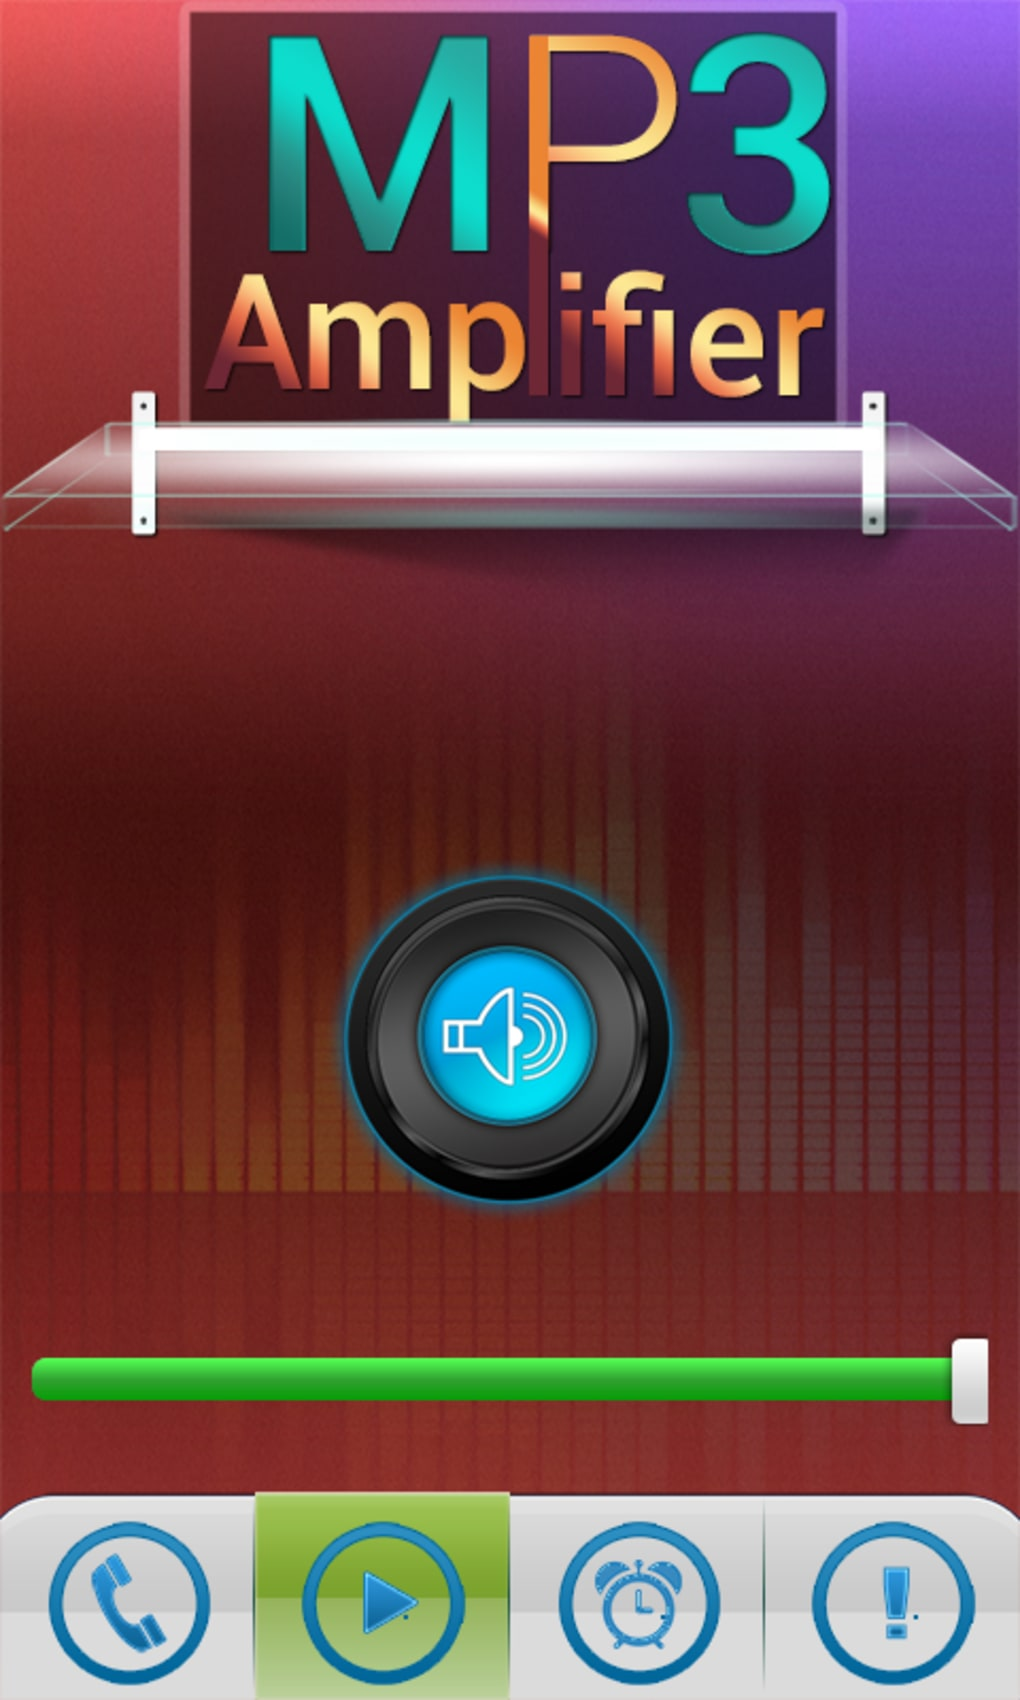 MP3 Amplifier Sound Booster for Android - Download